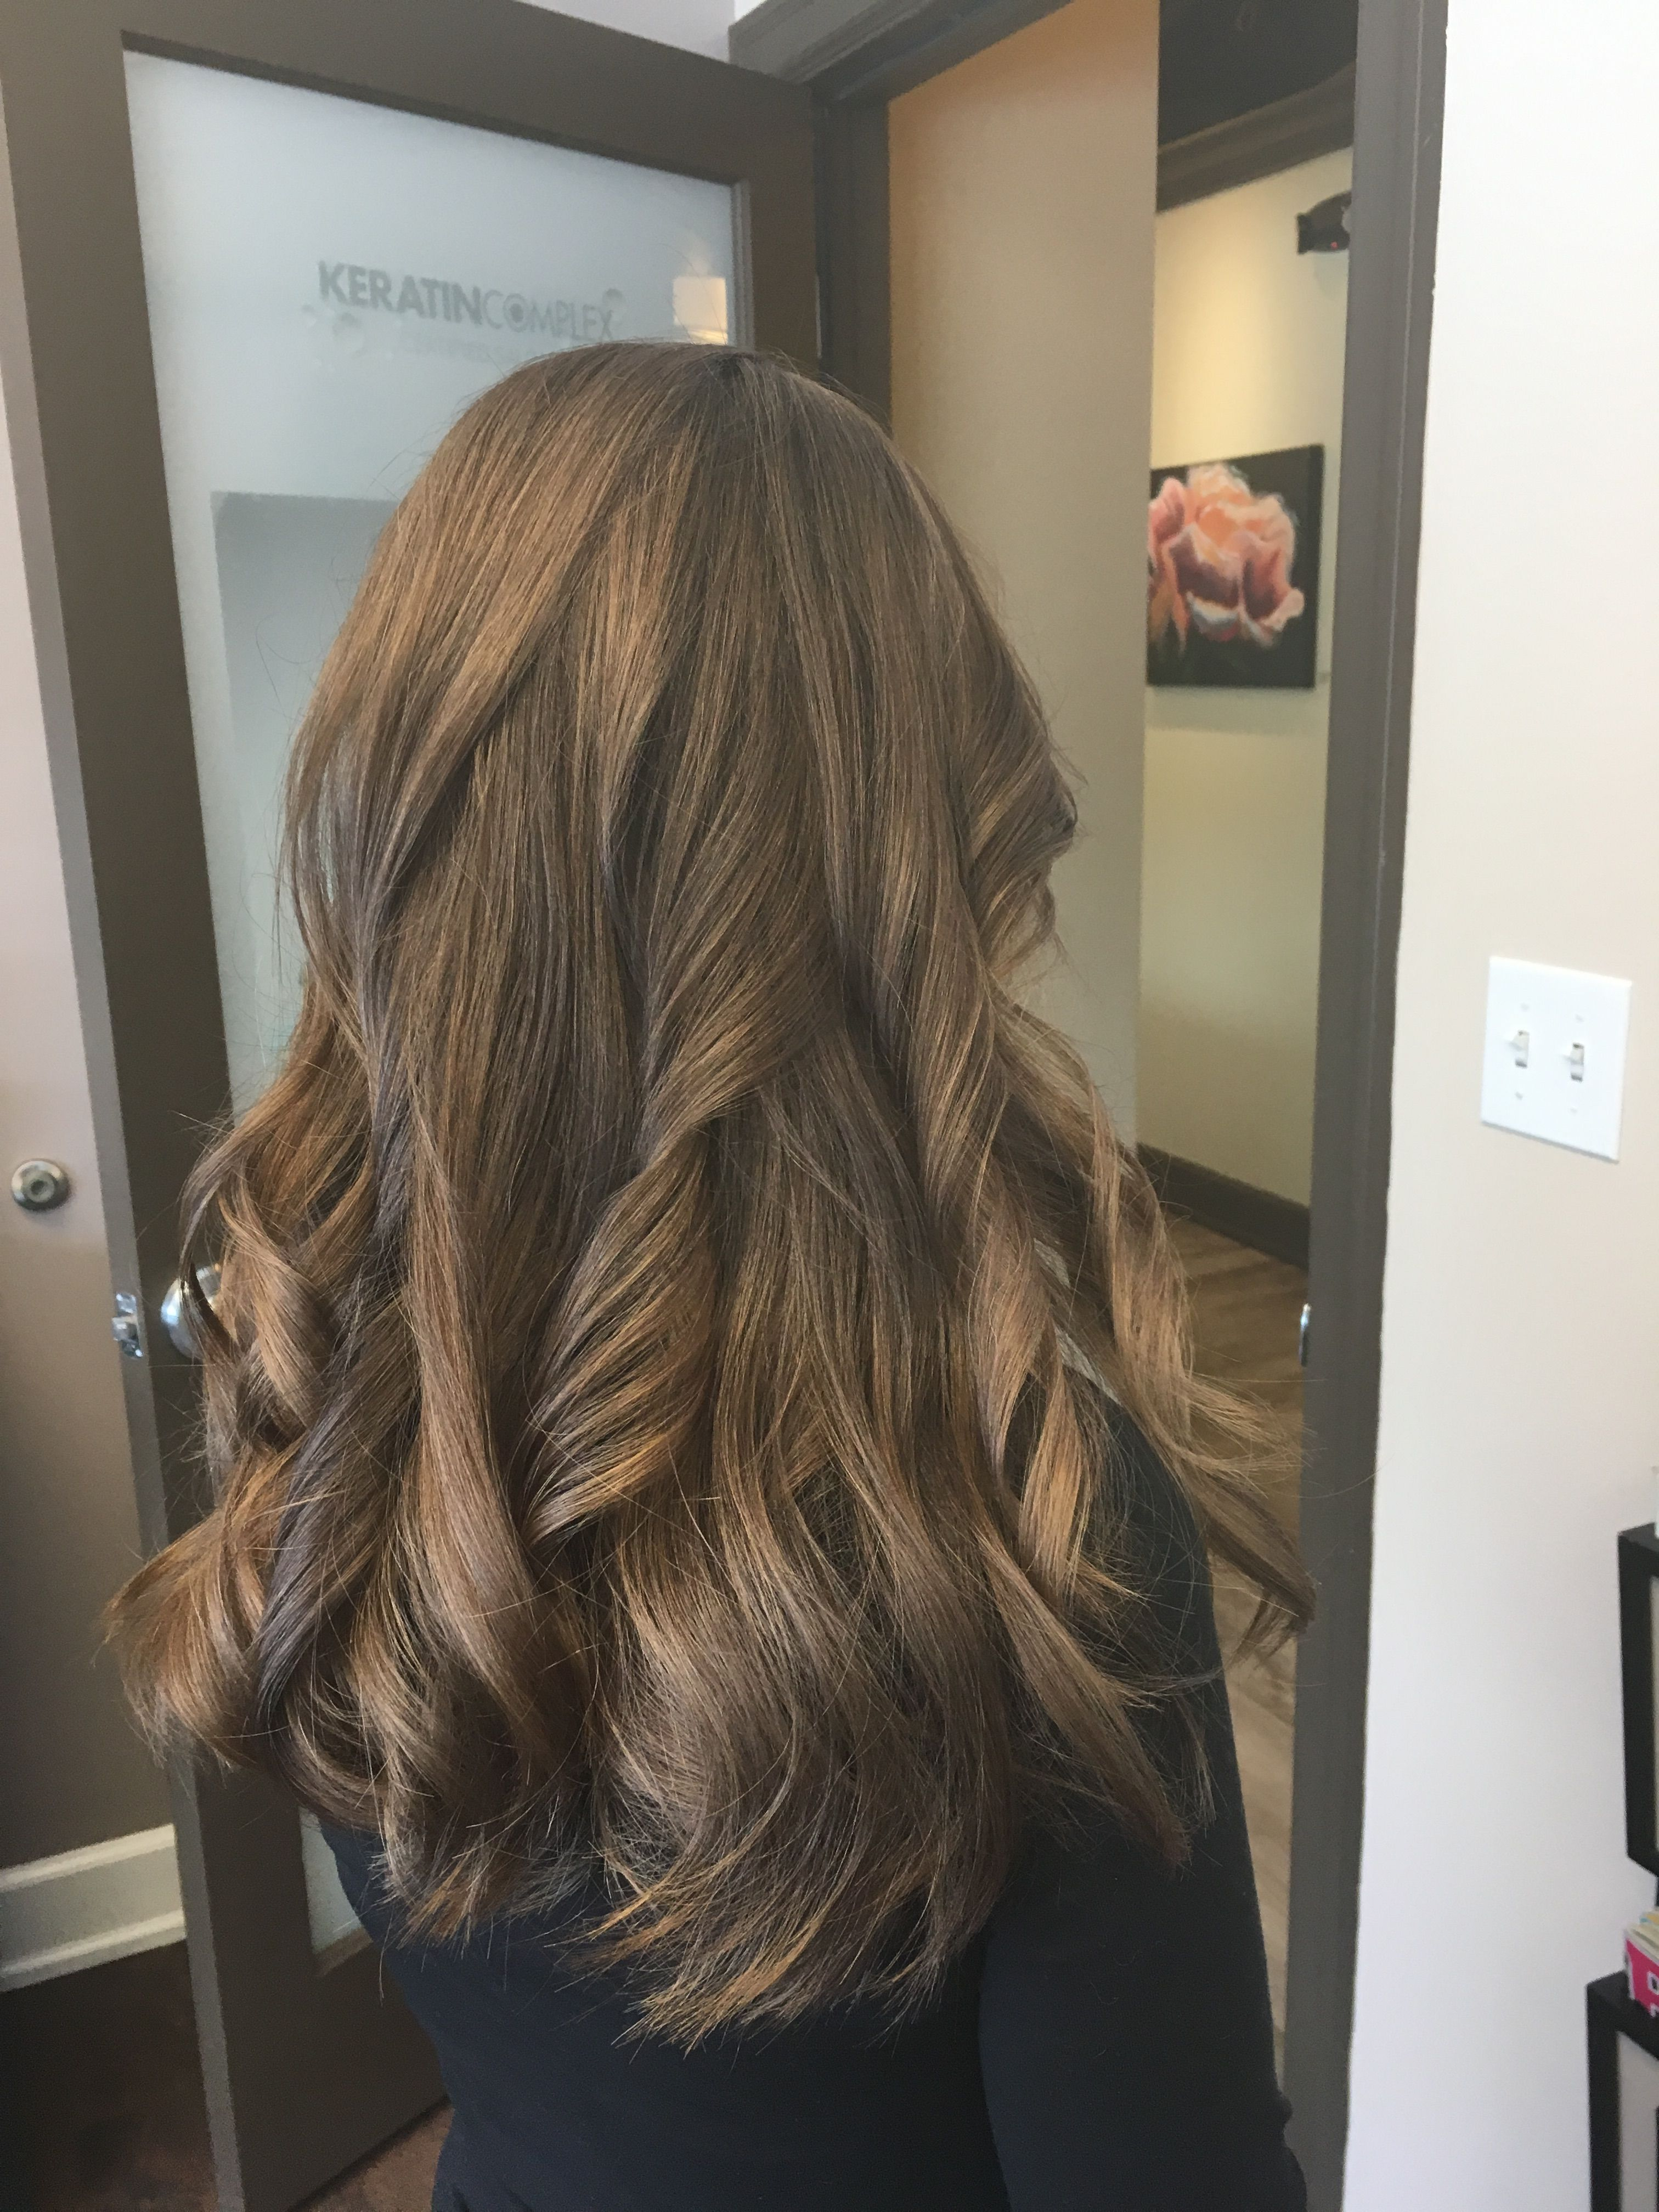 Pin By Running With Scissors Hair Stu On Hair By Running With Scissors Hair Studio In 2020 Long Hair Styles Hair Studio Beauty